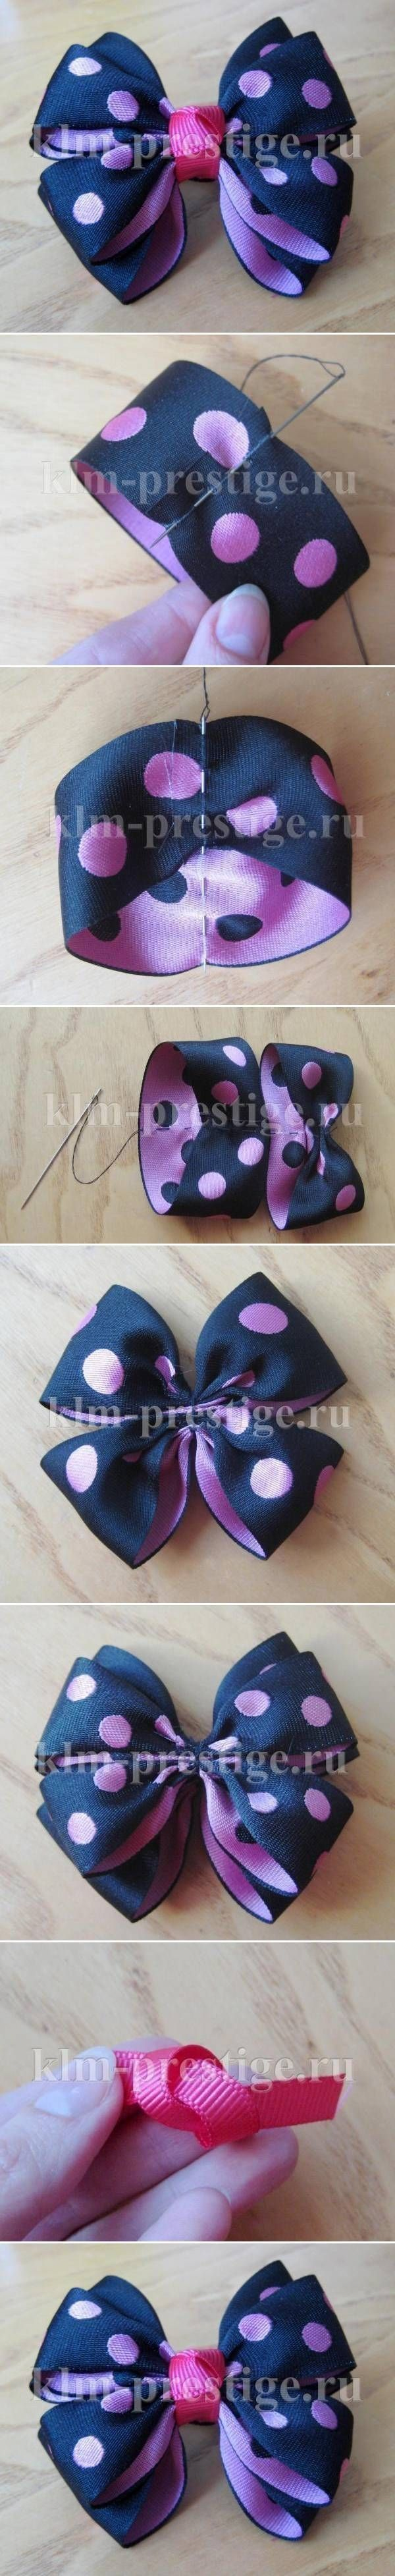 Diy easy double bow purple bow polka dots diy easy crafts diy ideas diy easy double bow purple bow polka dots diy easy crafts diy ideas diy crafts do solutioingenieria Images